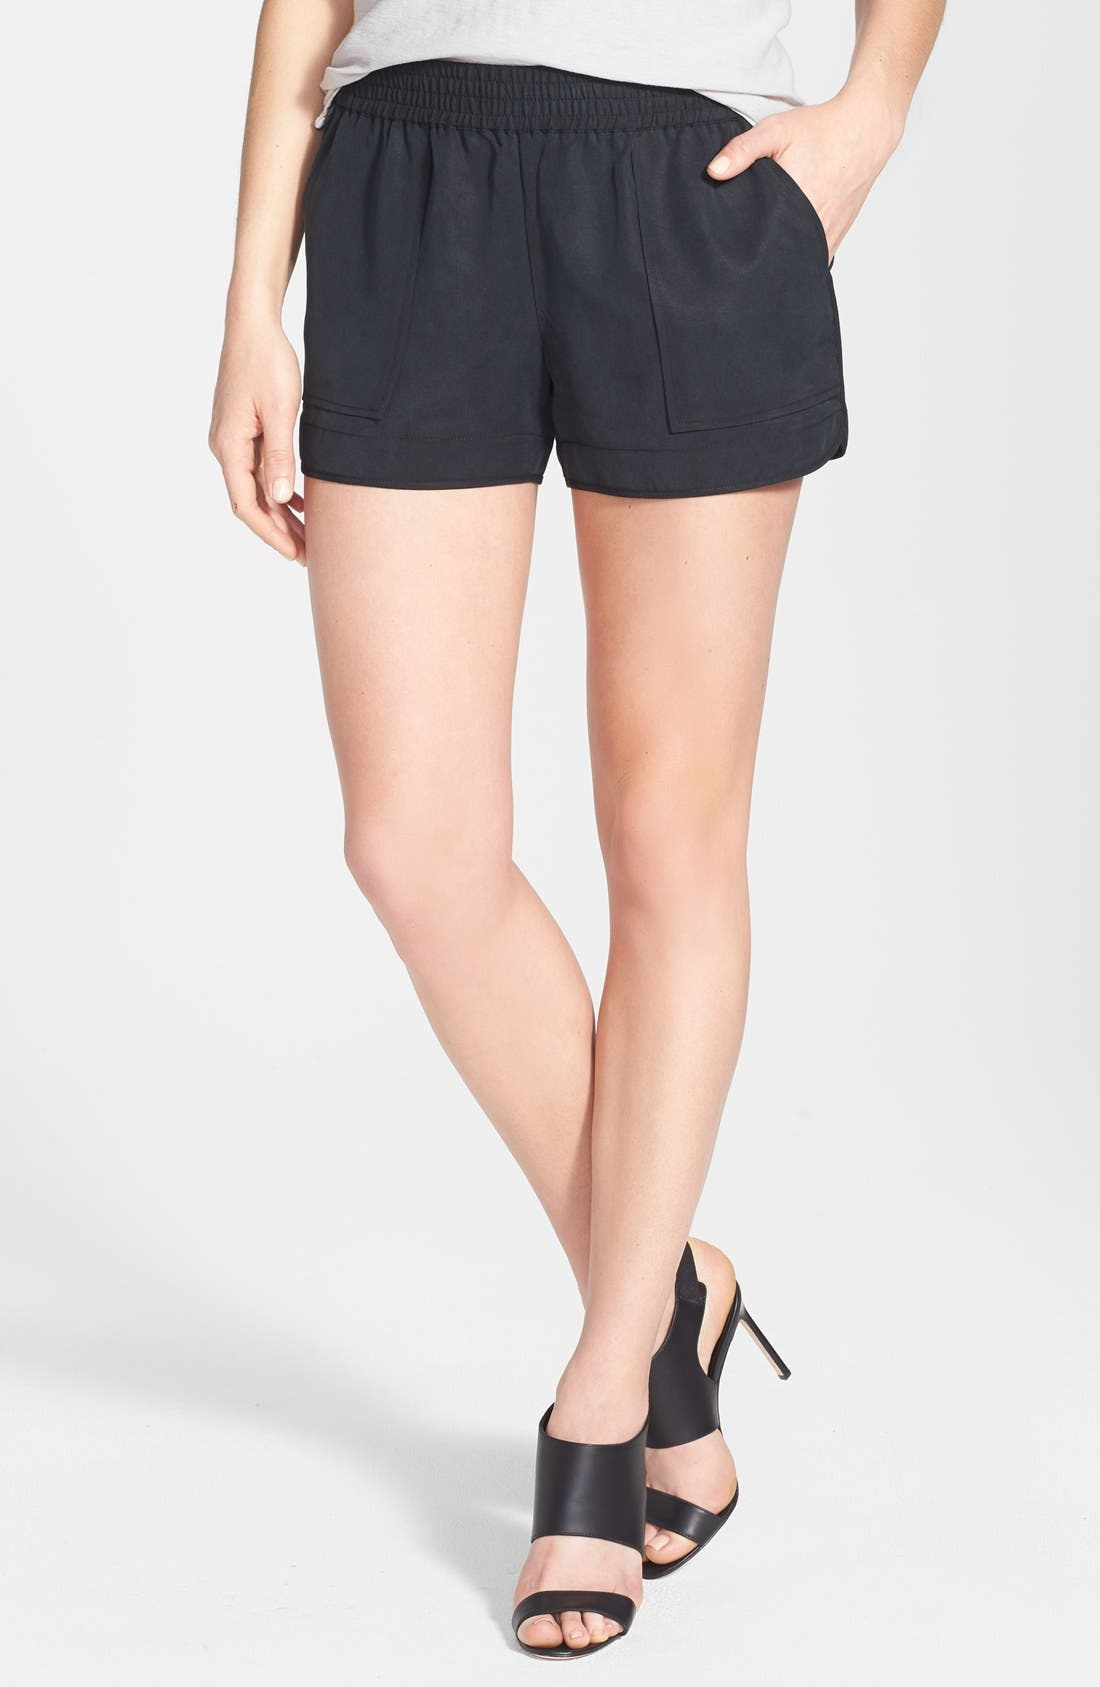 Beso Woven Shorts,                         Main,                         color,